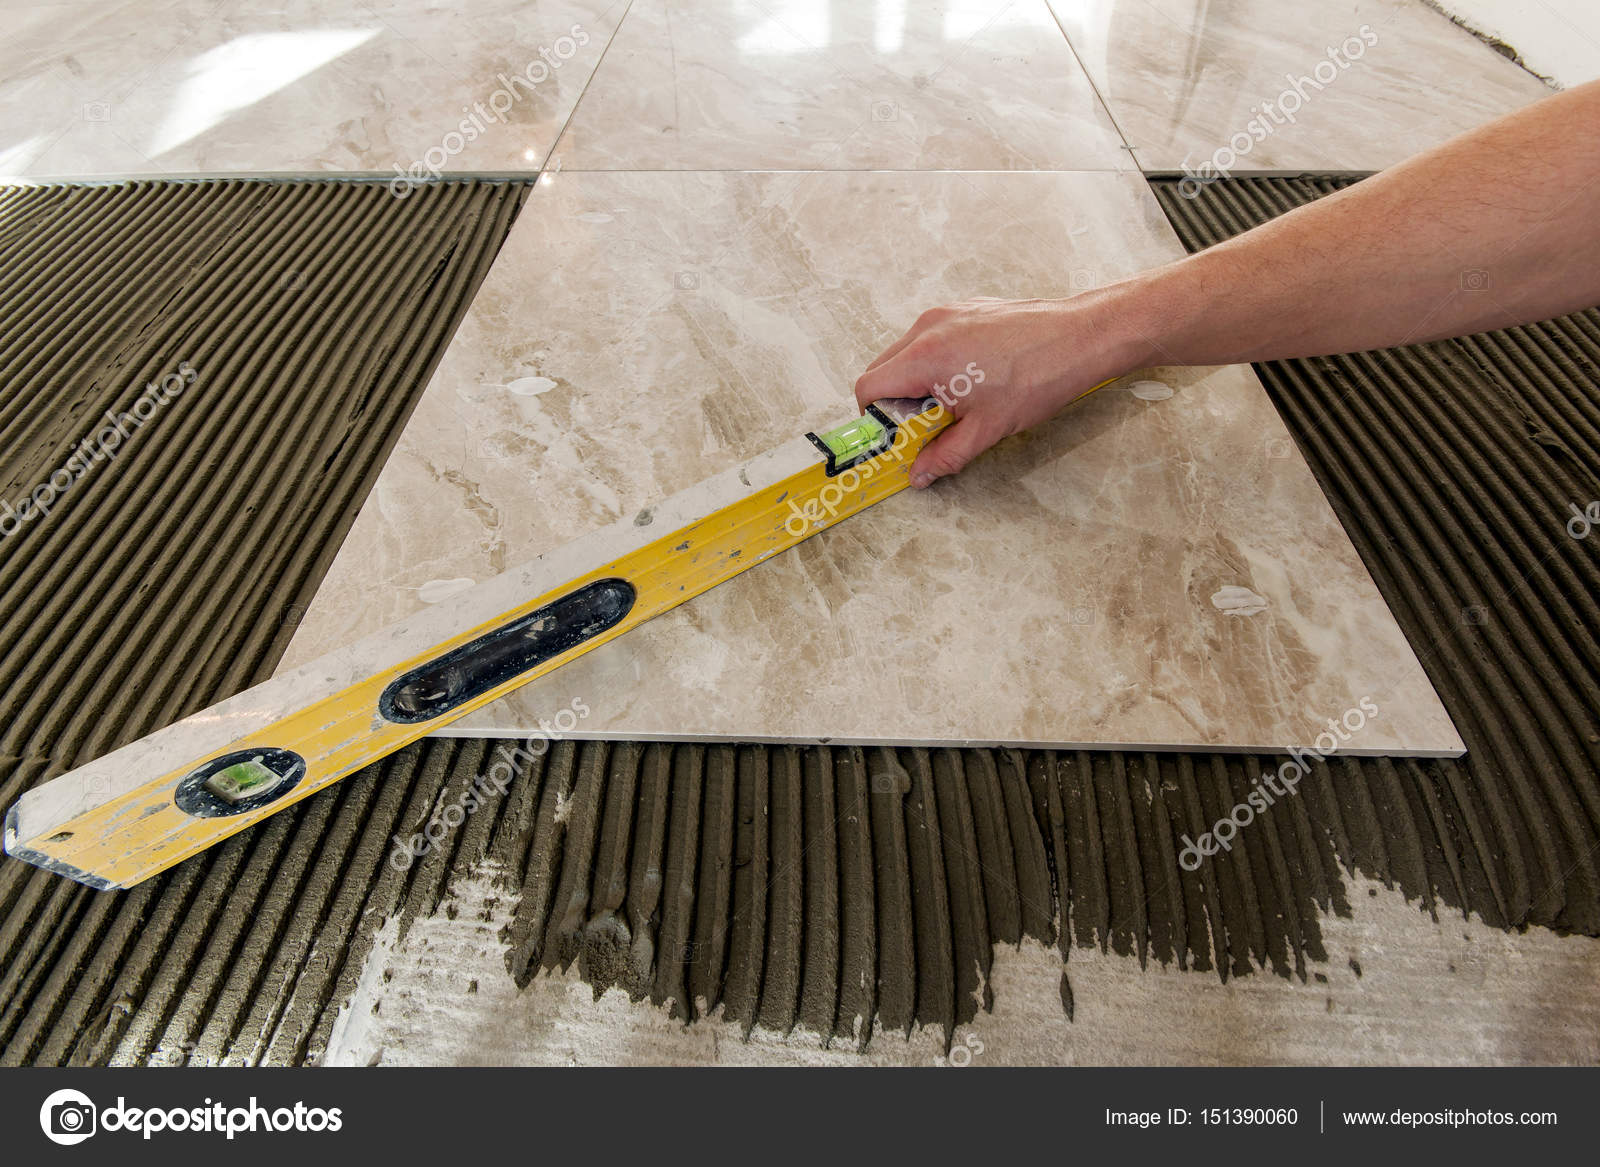 Ceramic tiles and tools for tiler floor tiles installation hom ceramic tiles and tools for tiler floor tiles installation hom stock photo dailygadgetfo Image collections